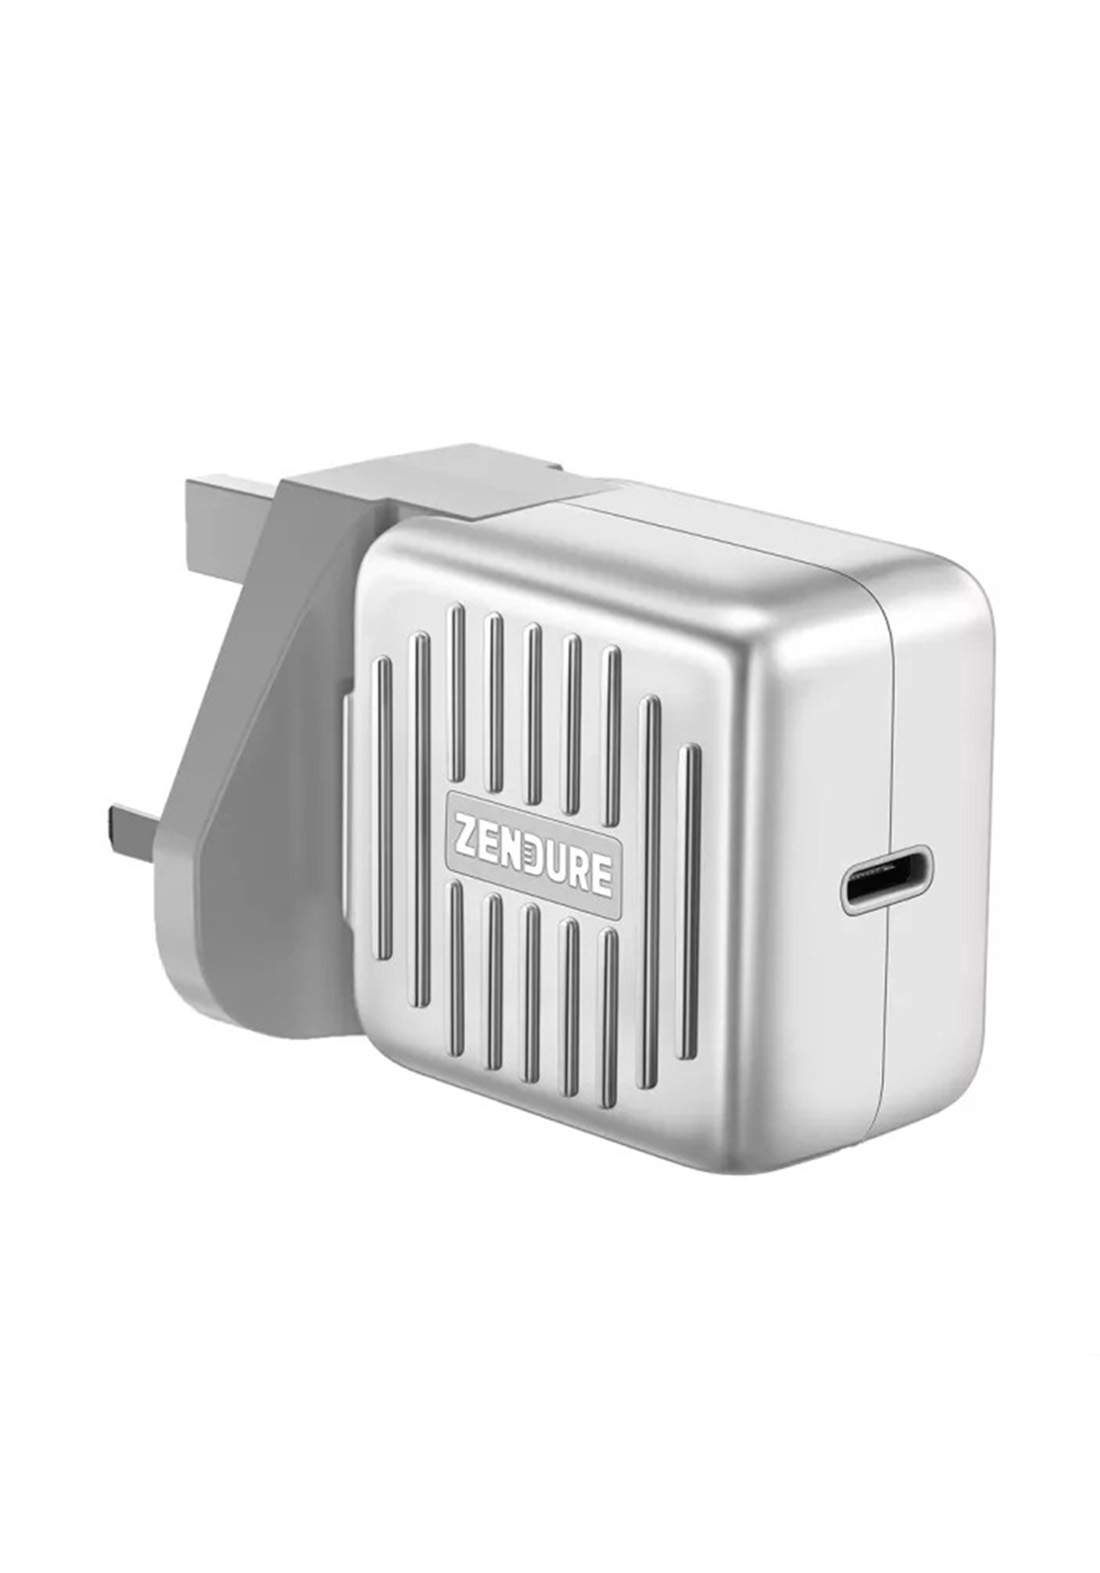 Zendure SuperPort 20W Power Delivery Wall Charger- Silver شاحن جداري